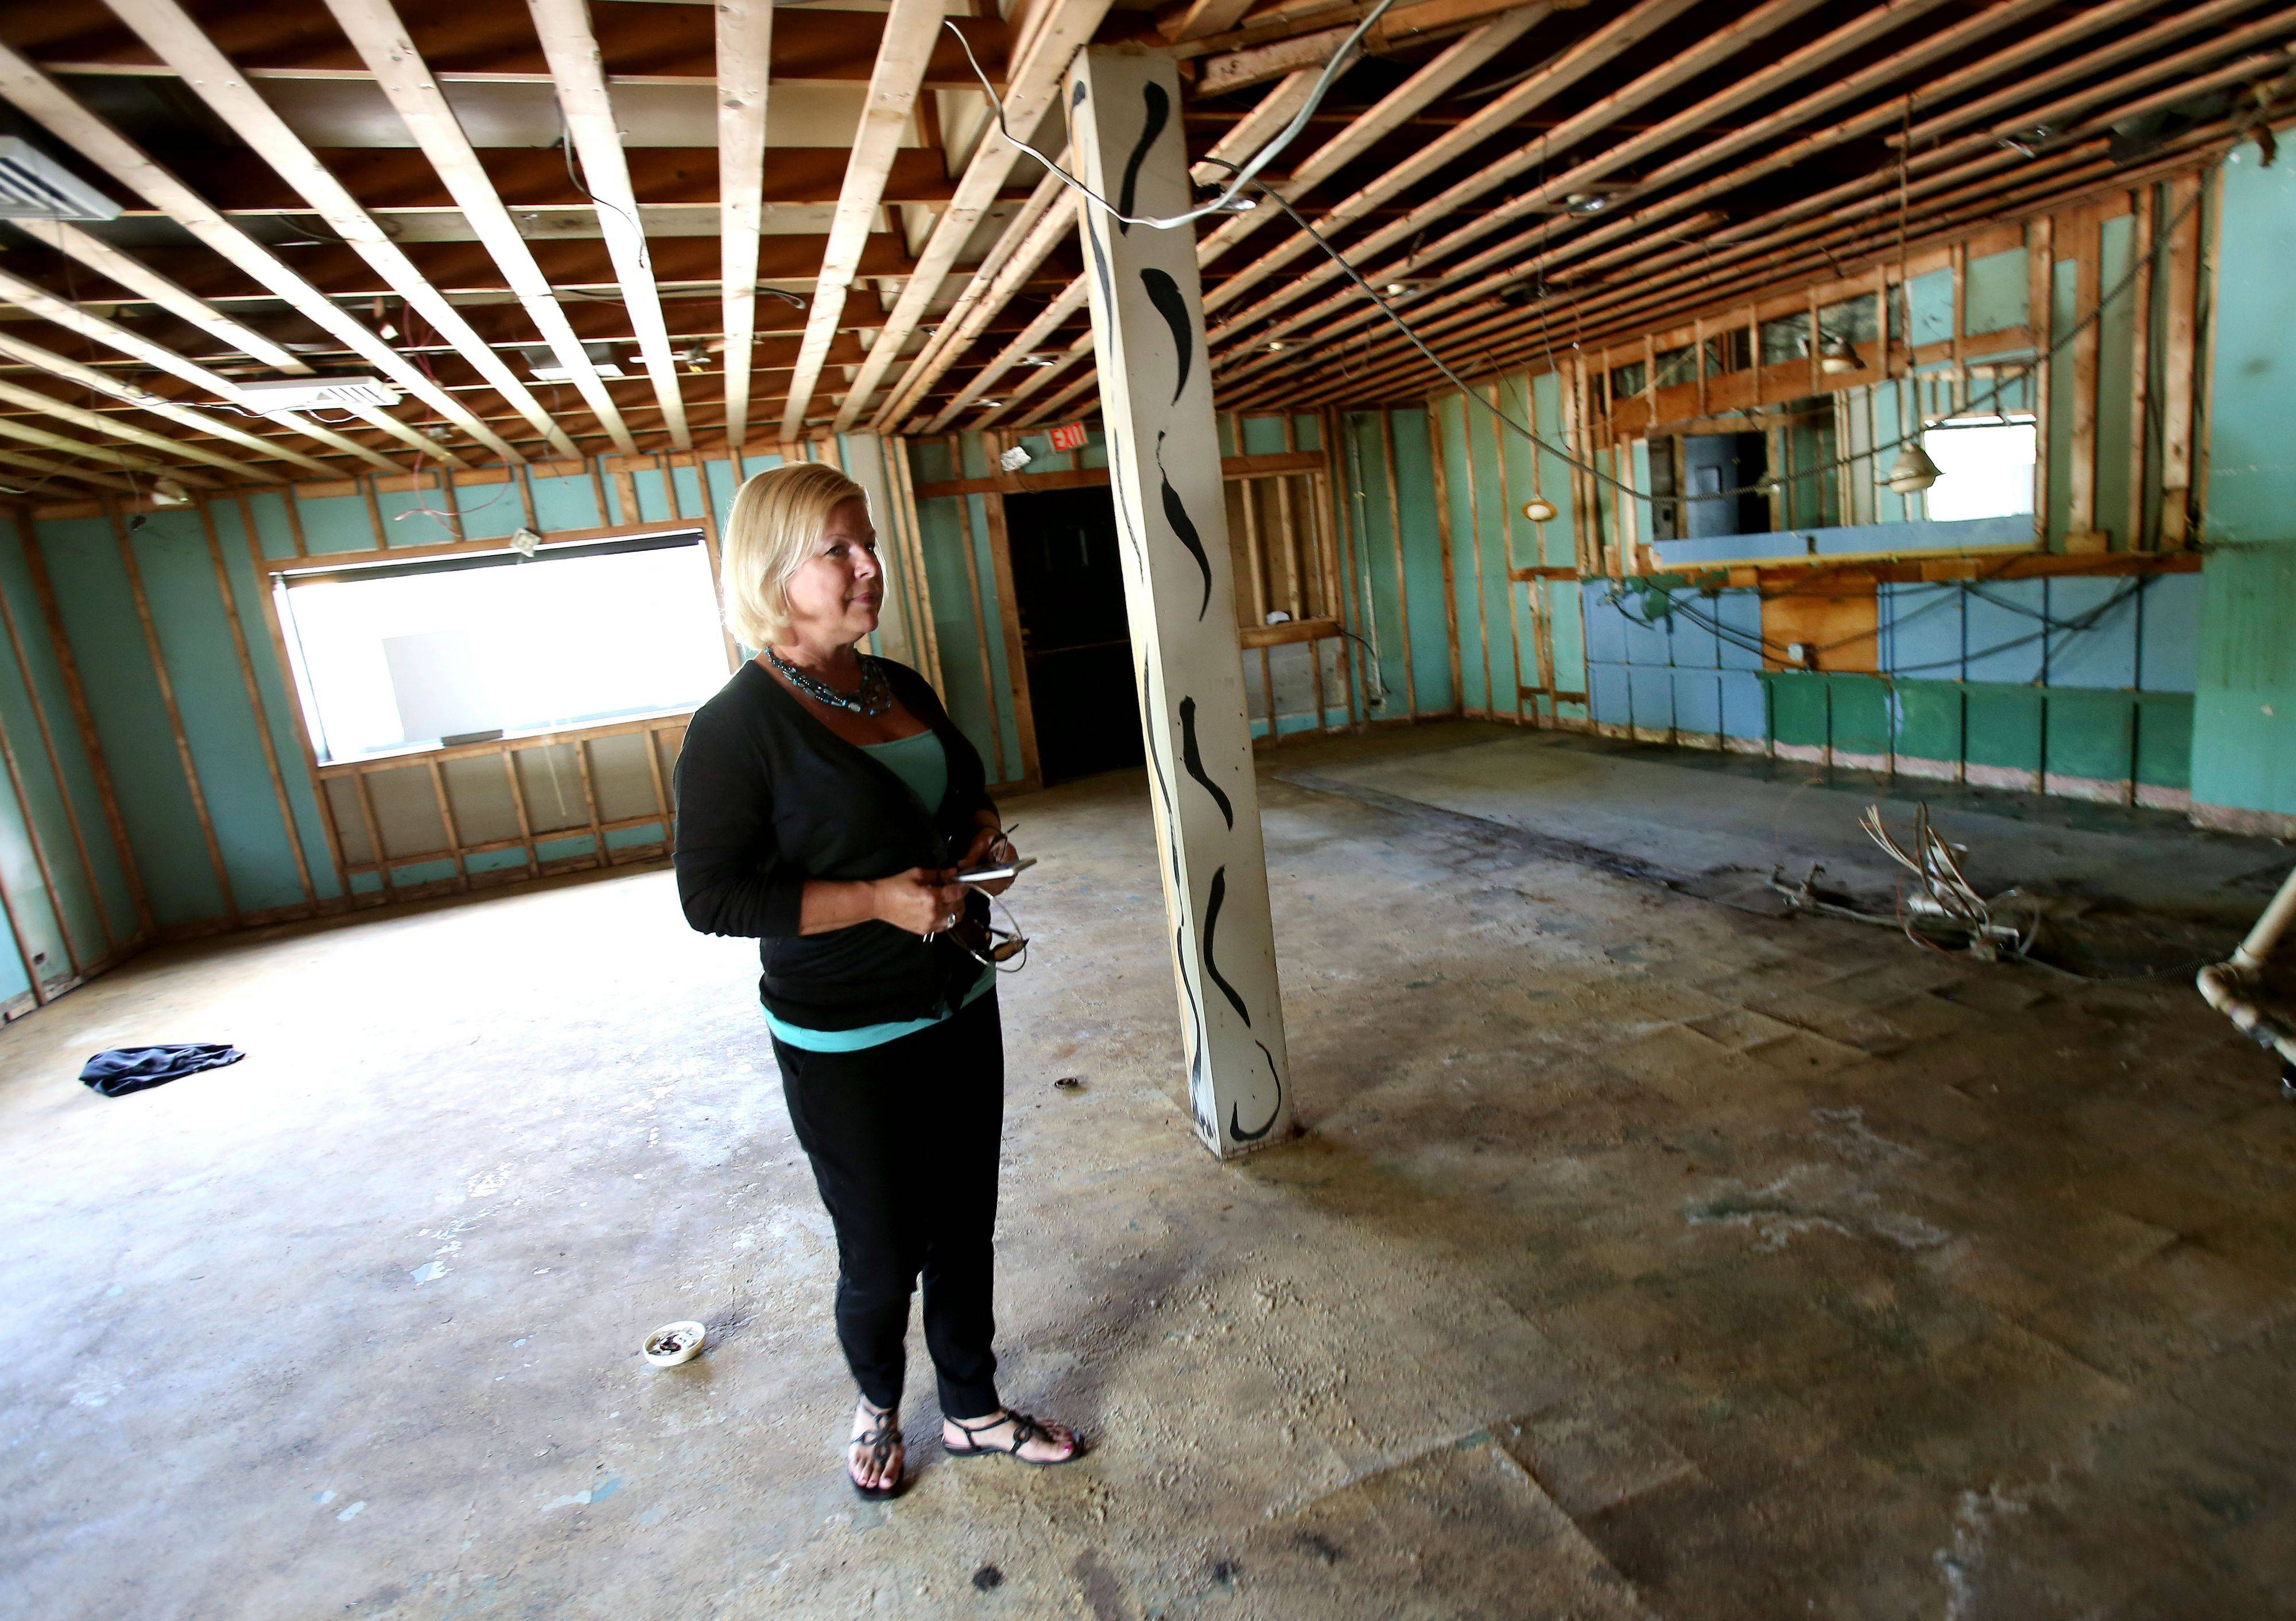 Jerri Nolan, owner of Raymes Steak and Fish House in Lisle, looks around the old building that was so severely flooded in April it can't be repaired. A new restaurant will be built on an adjacent lot.